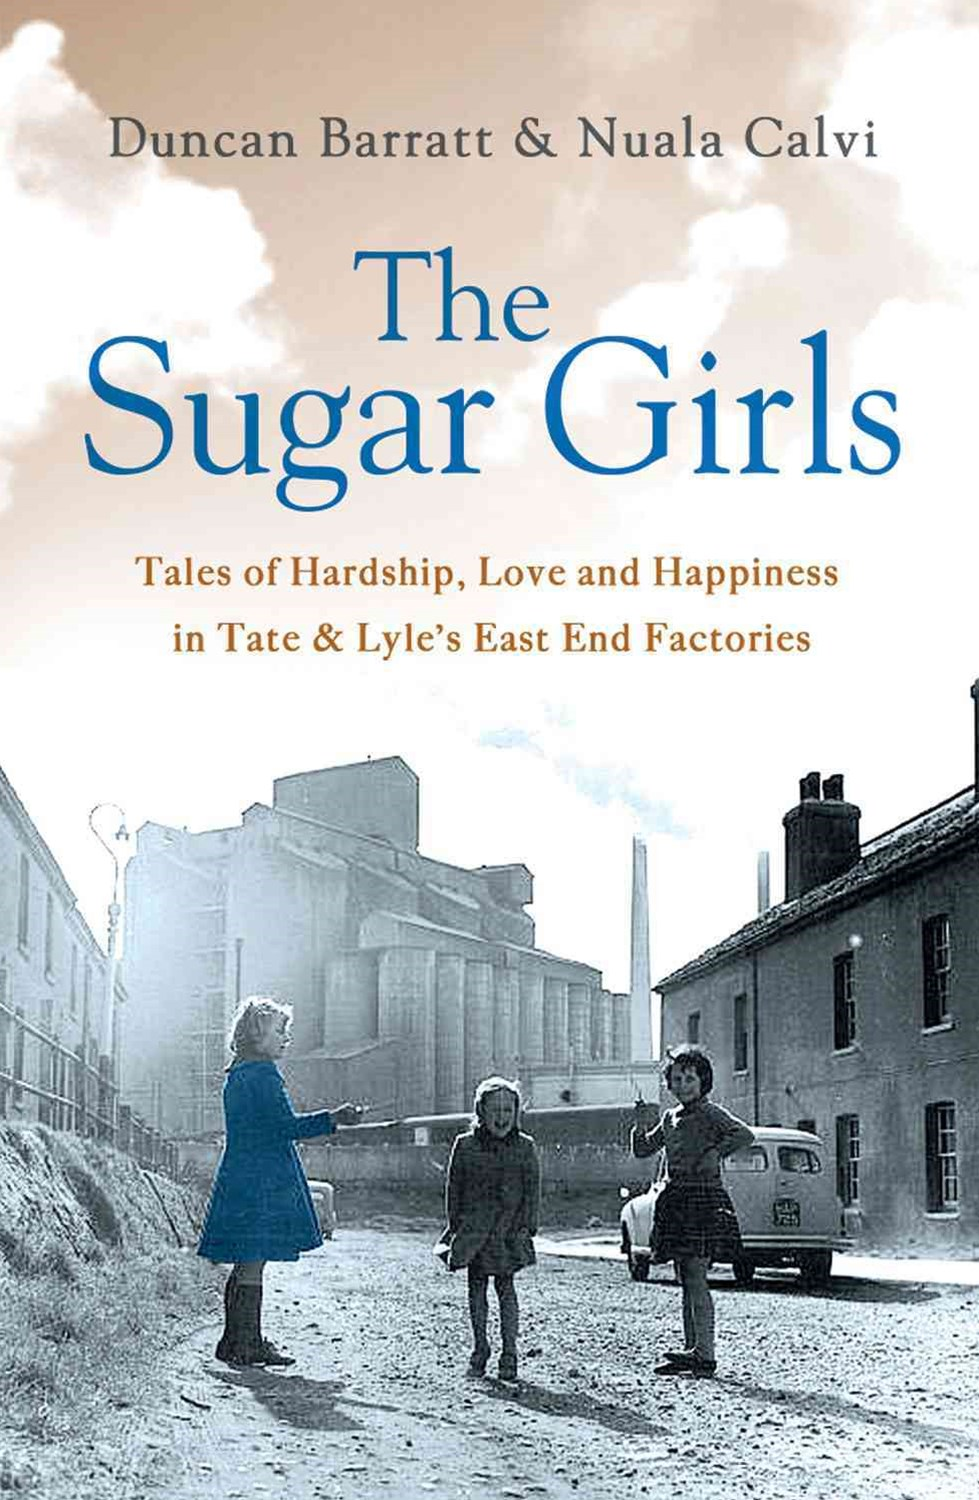 The Sugar Girls: Tales of Hardship, Love and Happiness in Tate and Lyle's East End